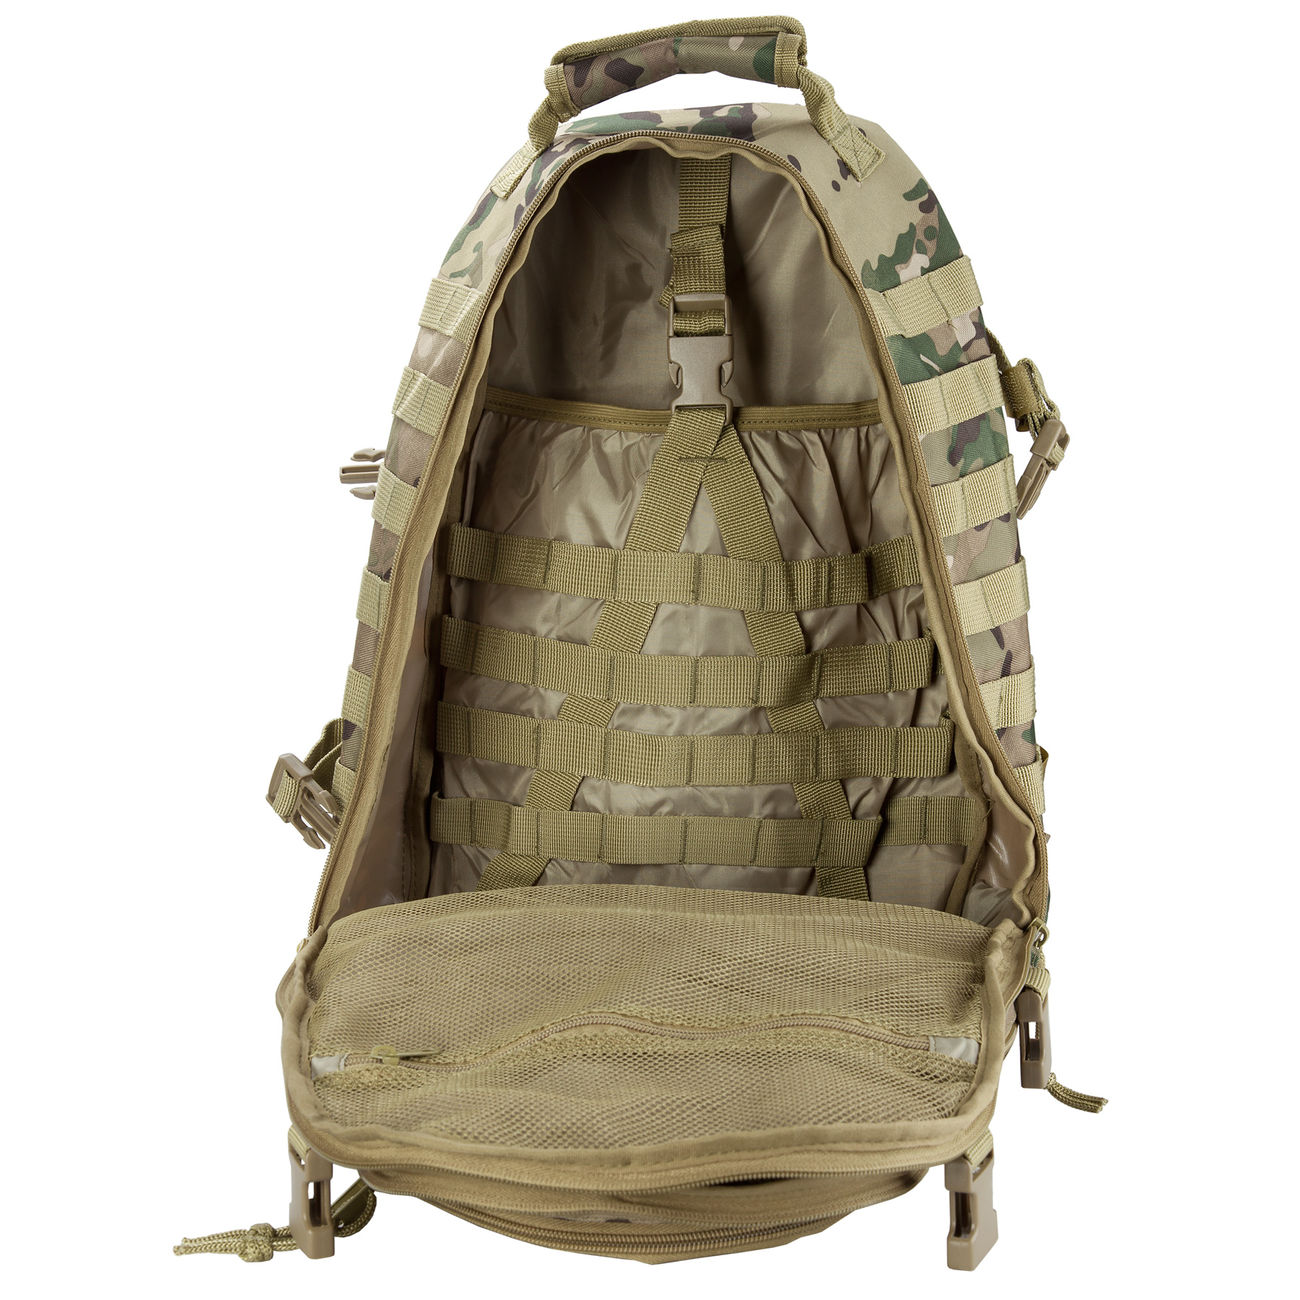 101 INC. Rucksack Mission Pack DTC multi 4